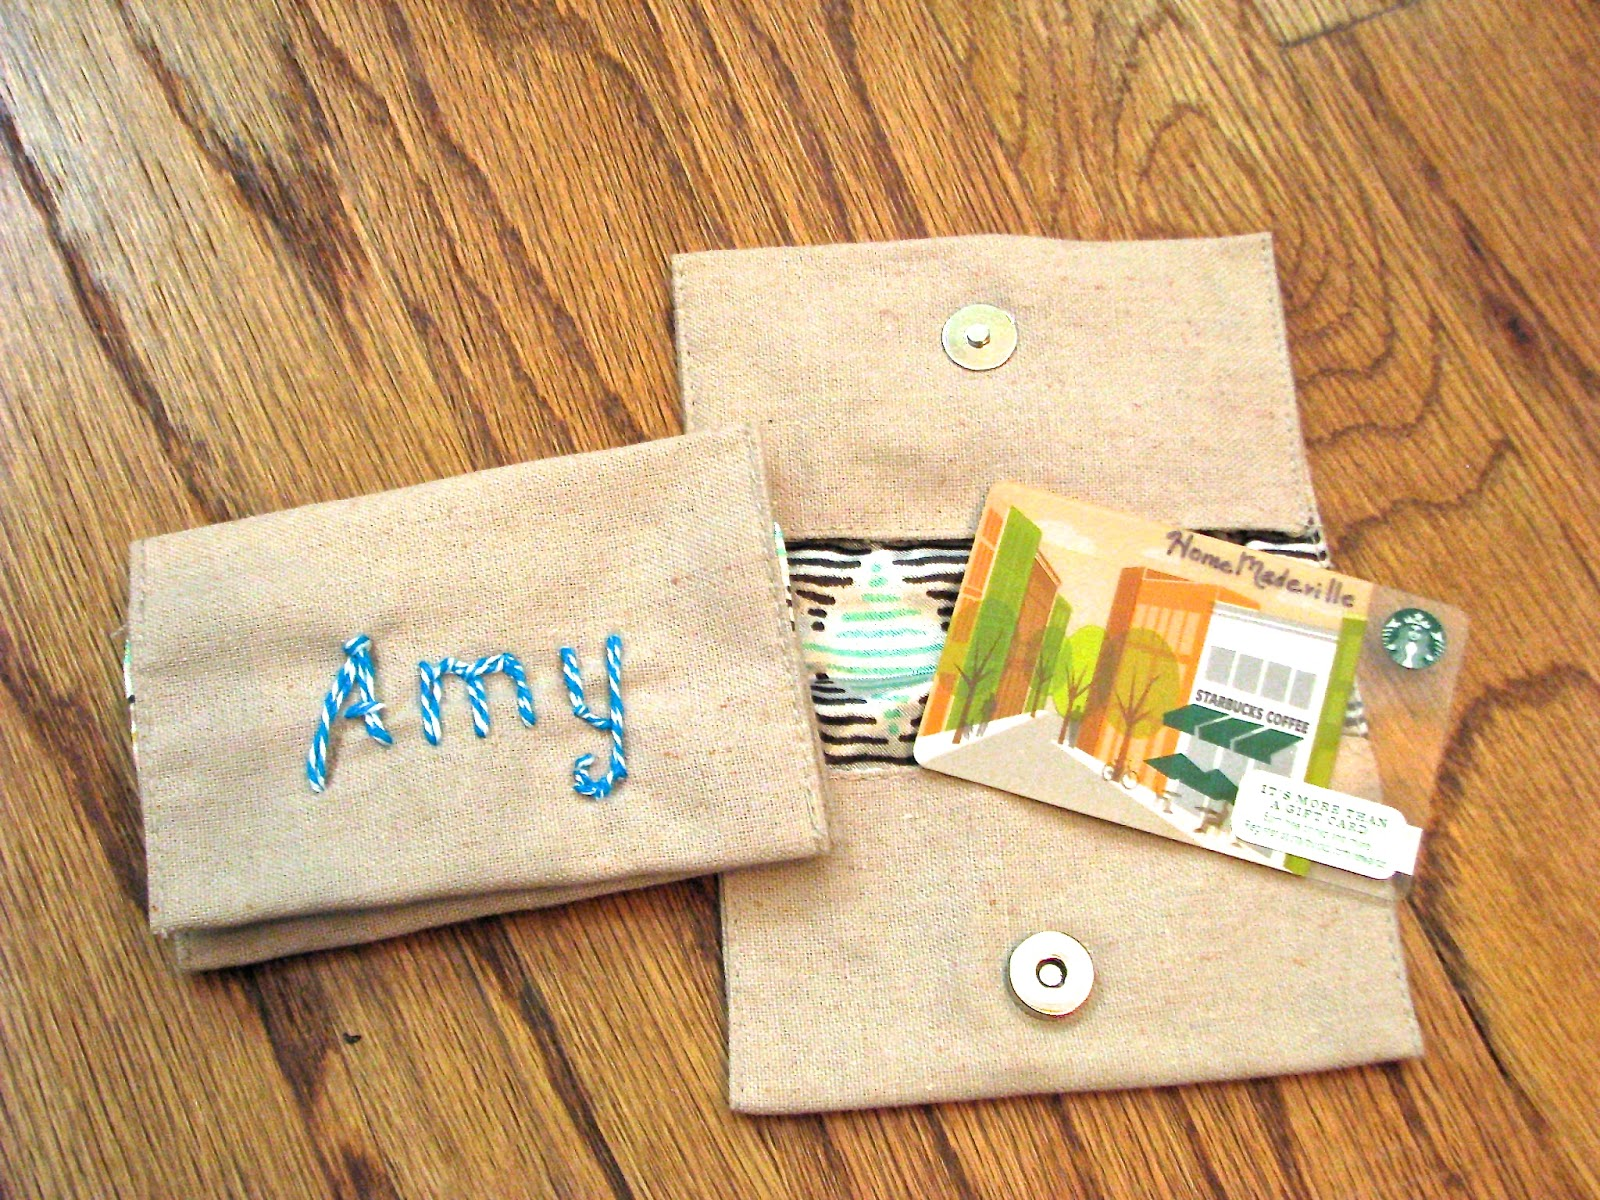 A gift card holder with name monogrammed with baker's twine.